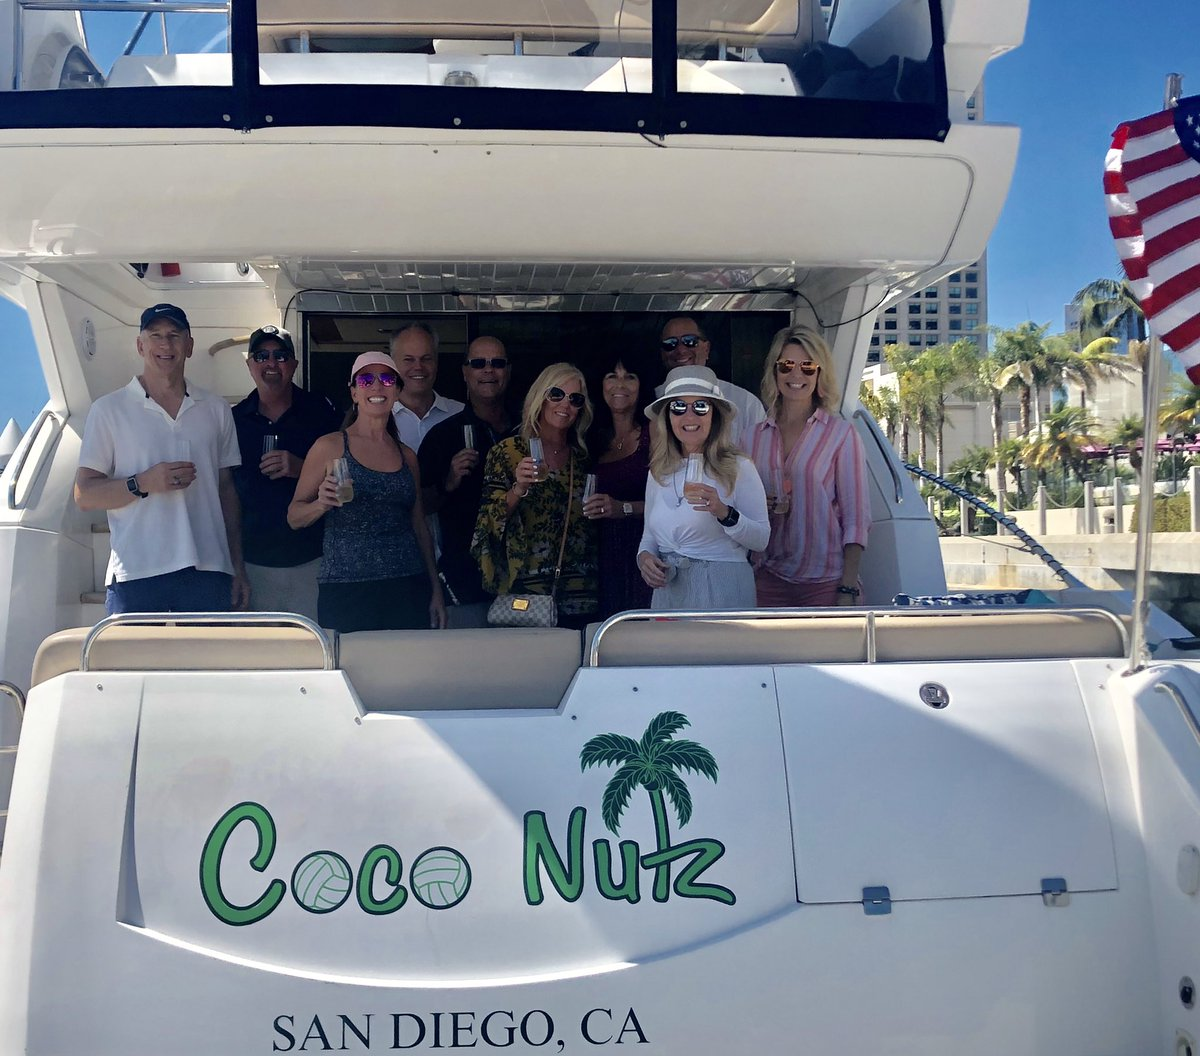 One of the things I love about @LPL events is spending time with friends we have met over my 27+years in the business! #LPLFocus #SanDiego #yachtlife @jpmorgan @LaPointeWealth https://t.co/3CIolbpqU0